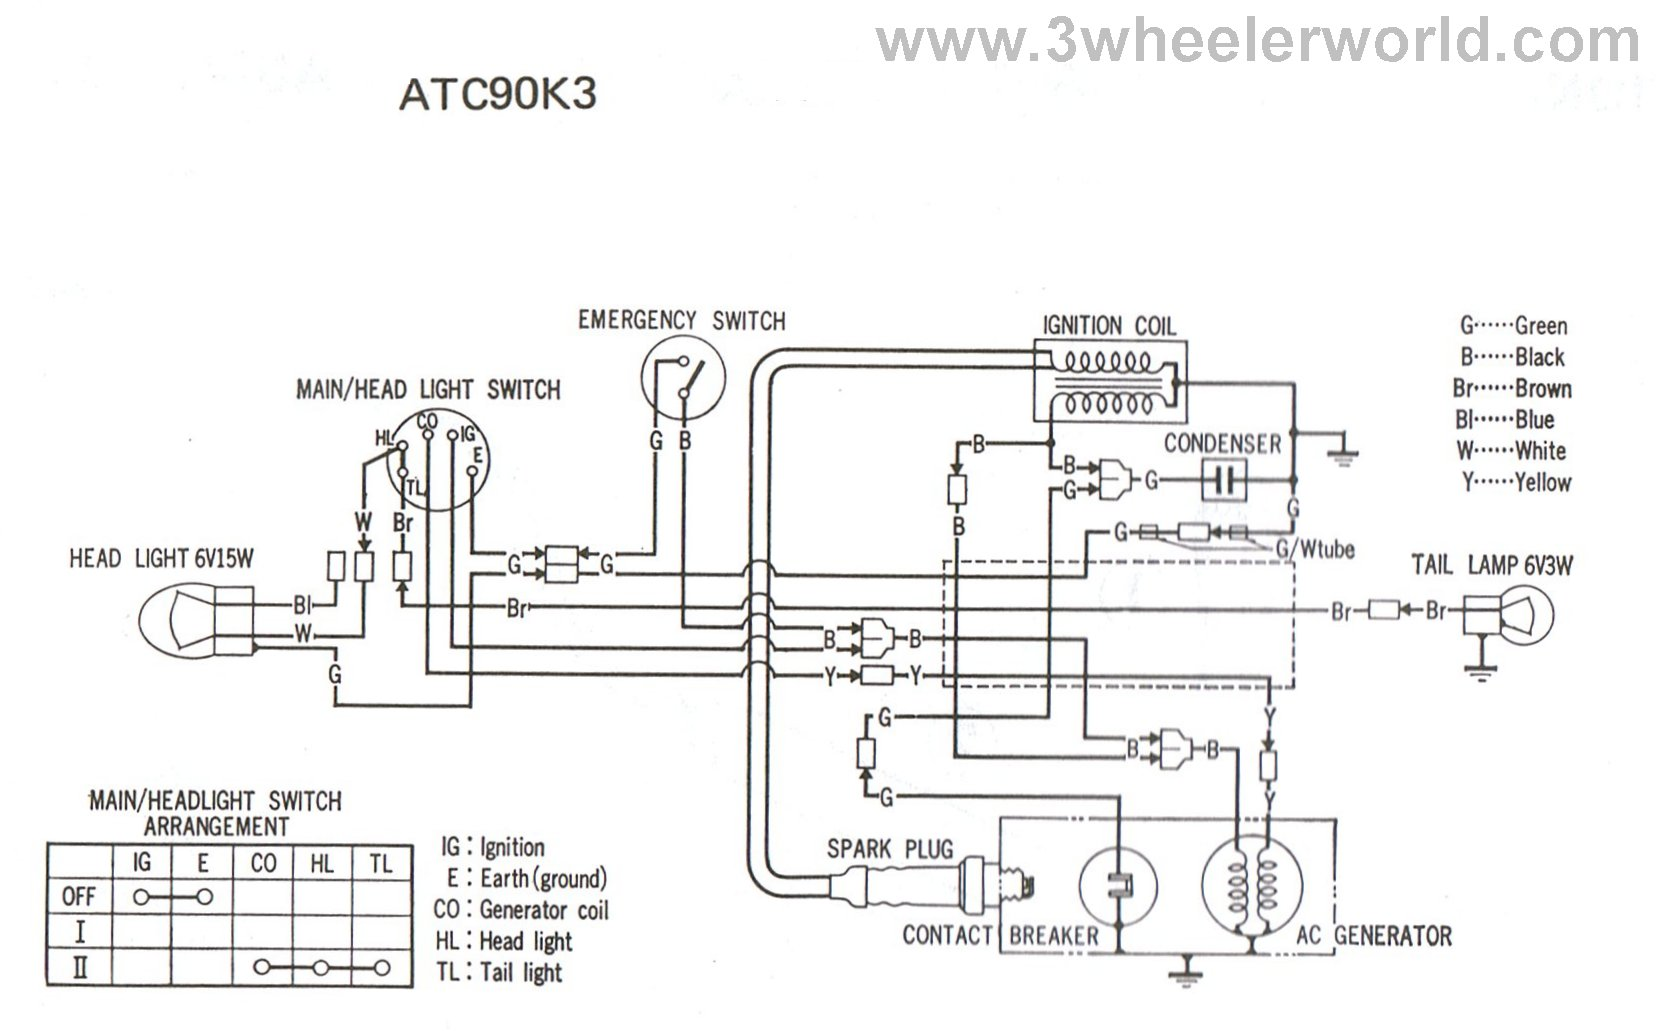 ATC90K3HM polaris predator 90 wiring diagram polaris 90 service manual Polaris Ignition Wiring Diagram at crackthecode.co